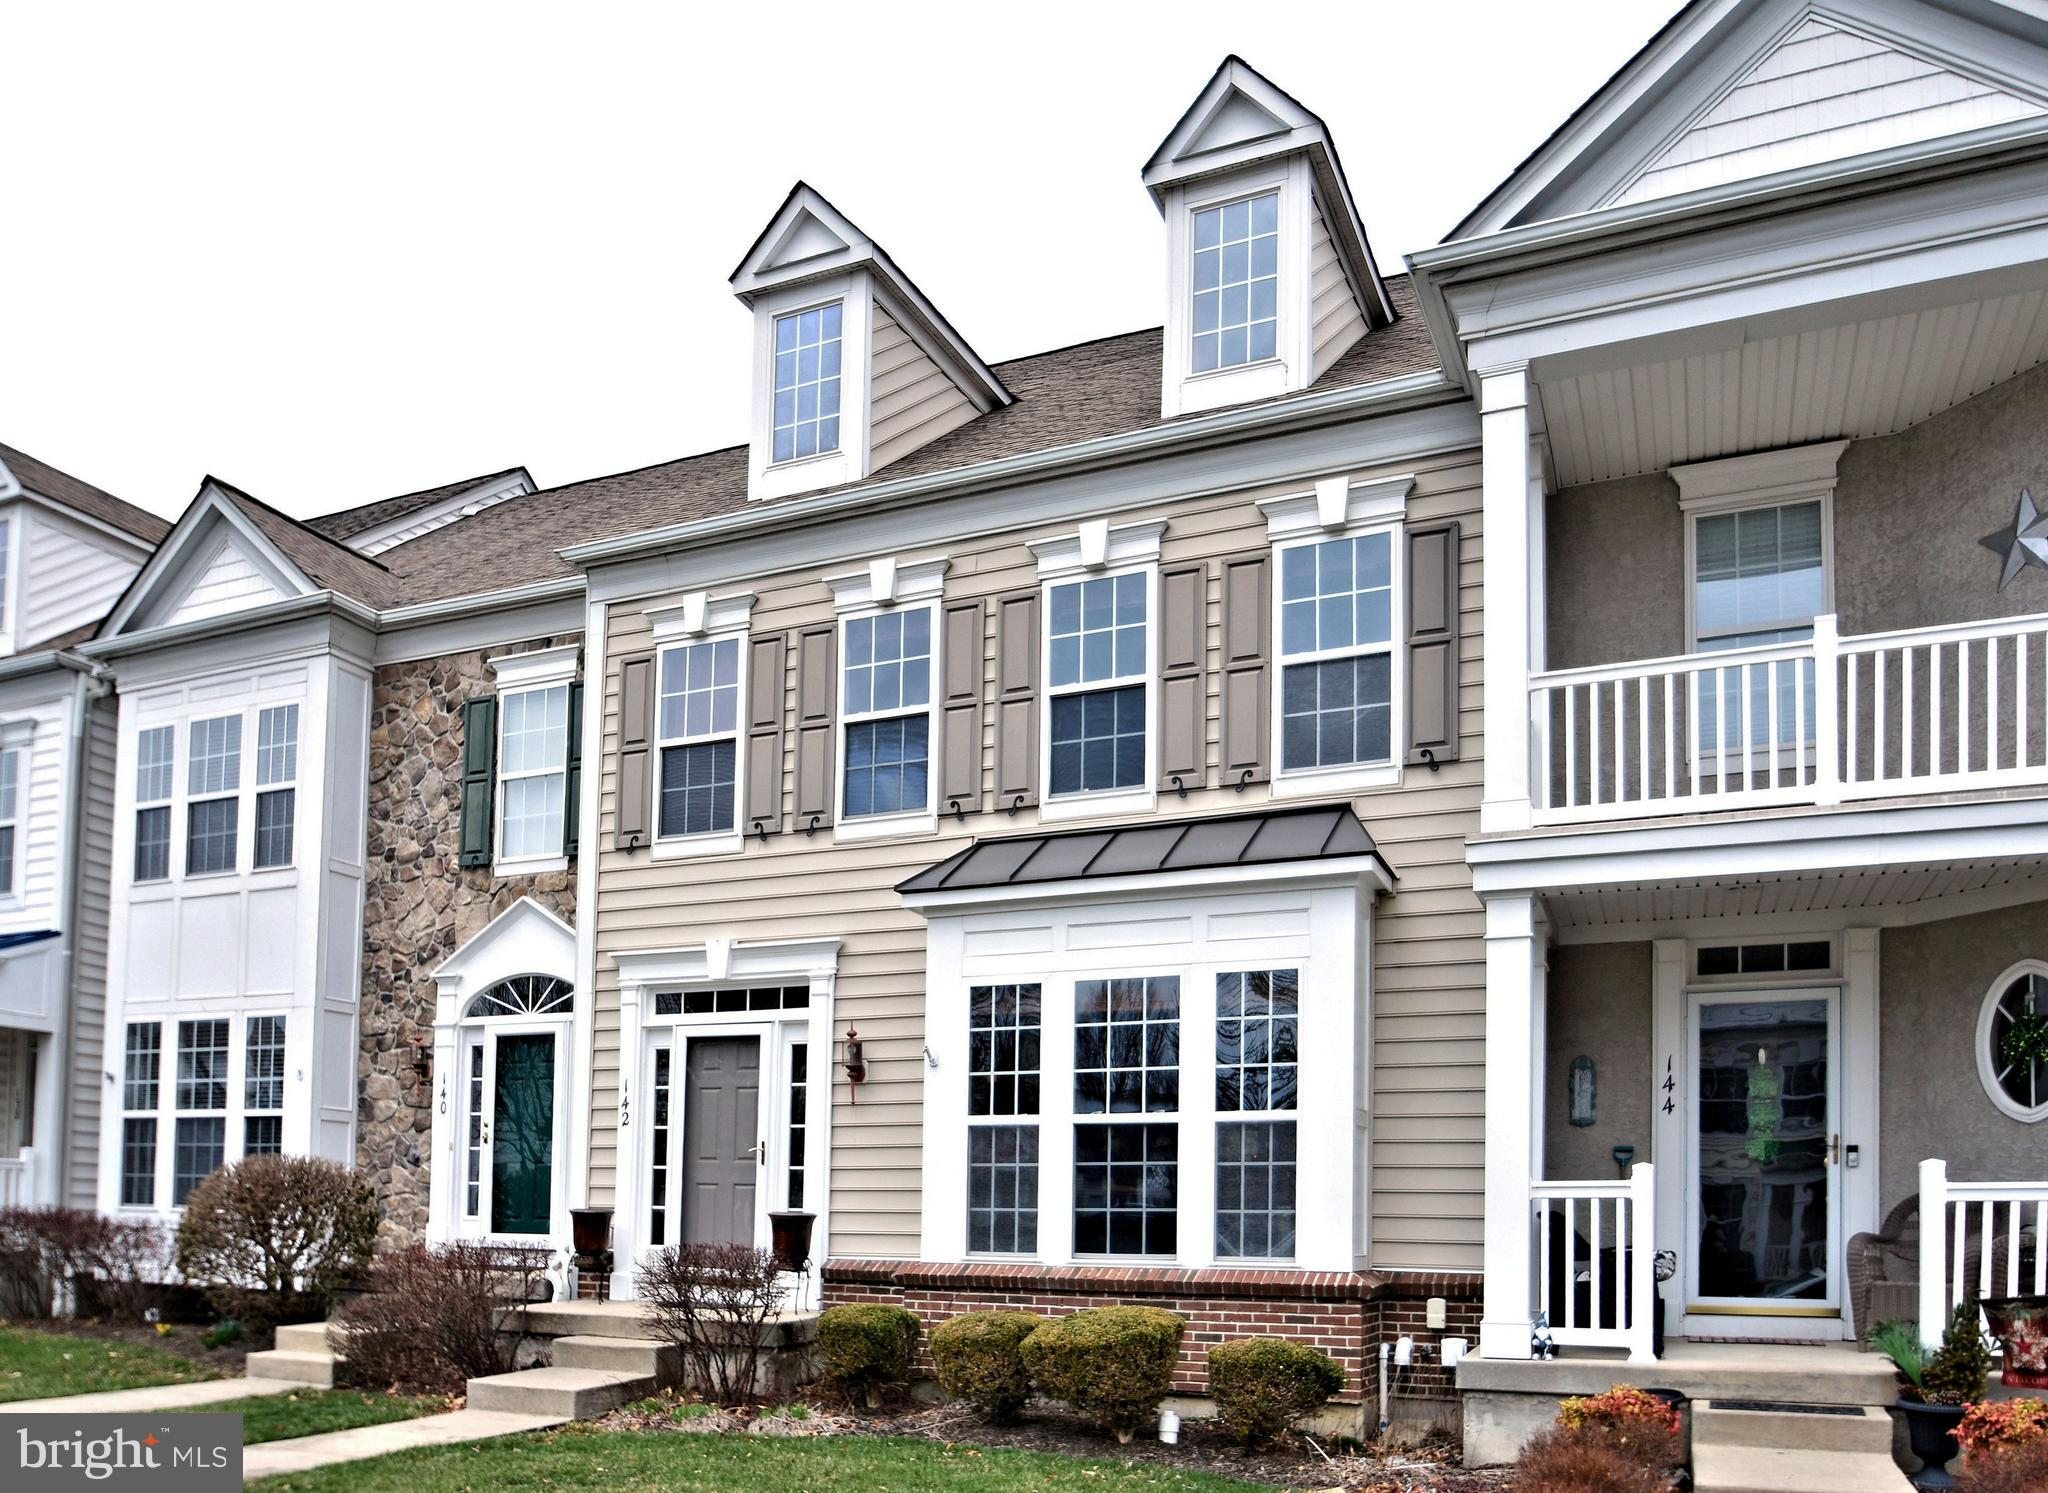 142 Pipers Inn Drive, Fountainville, PA 18923